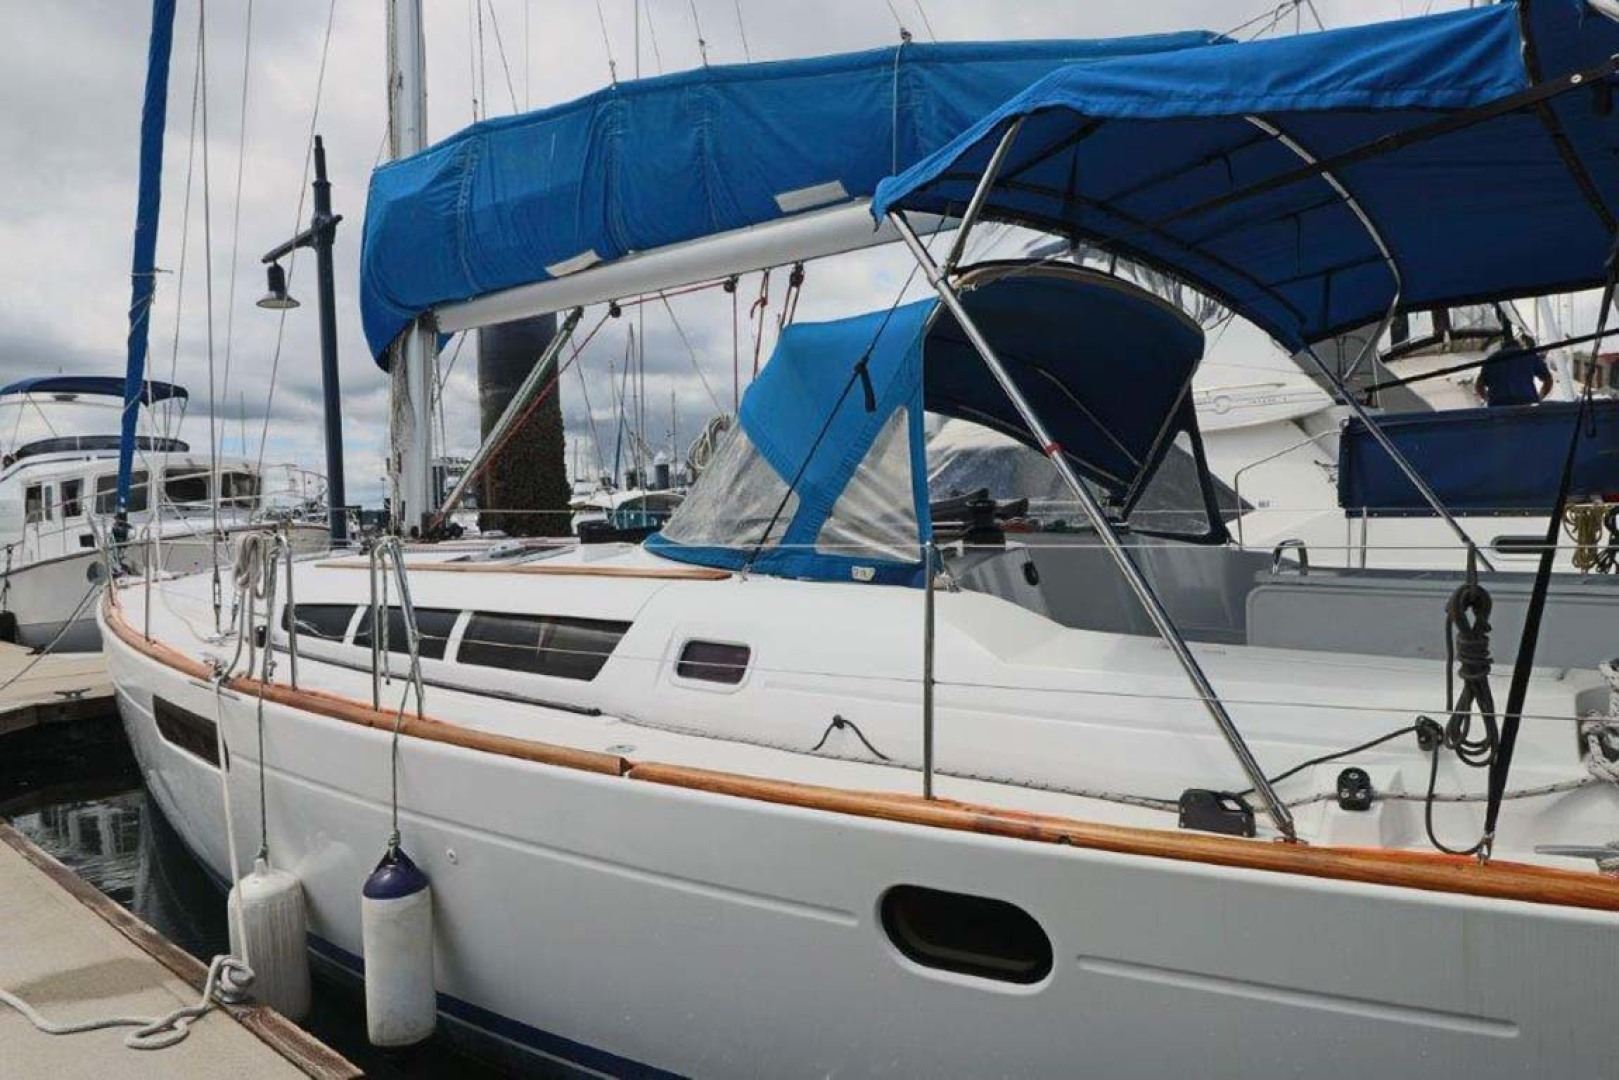 Jeanneau-Sun Odyssey 44i 2010-Intrigue Poulsbo-Washington-United States-Port Side View-1153340 | Thumbnail